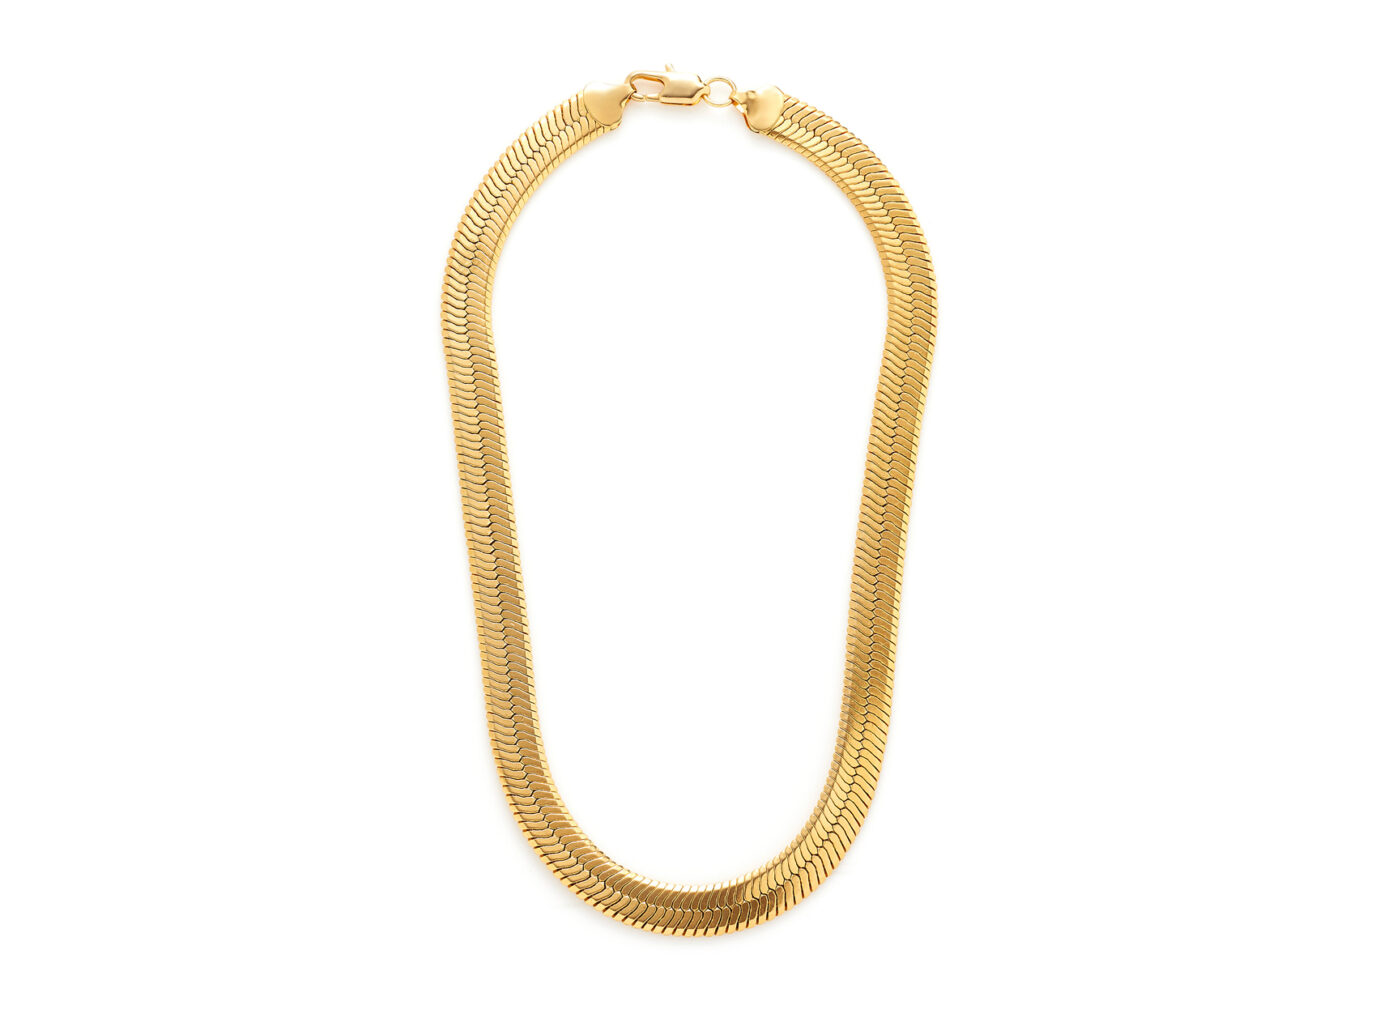 Gold Necklace: Fallon Gold-Tone Brass Collar Necklace